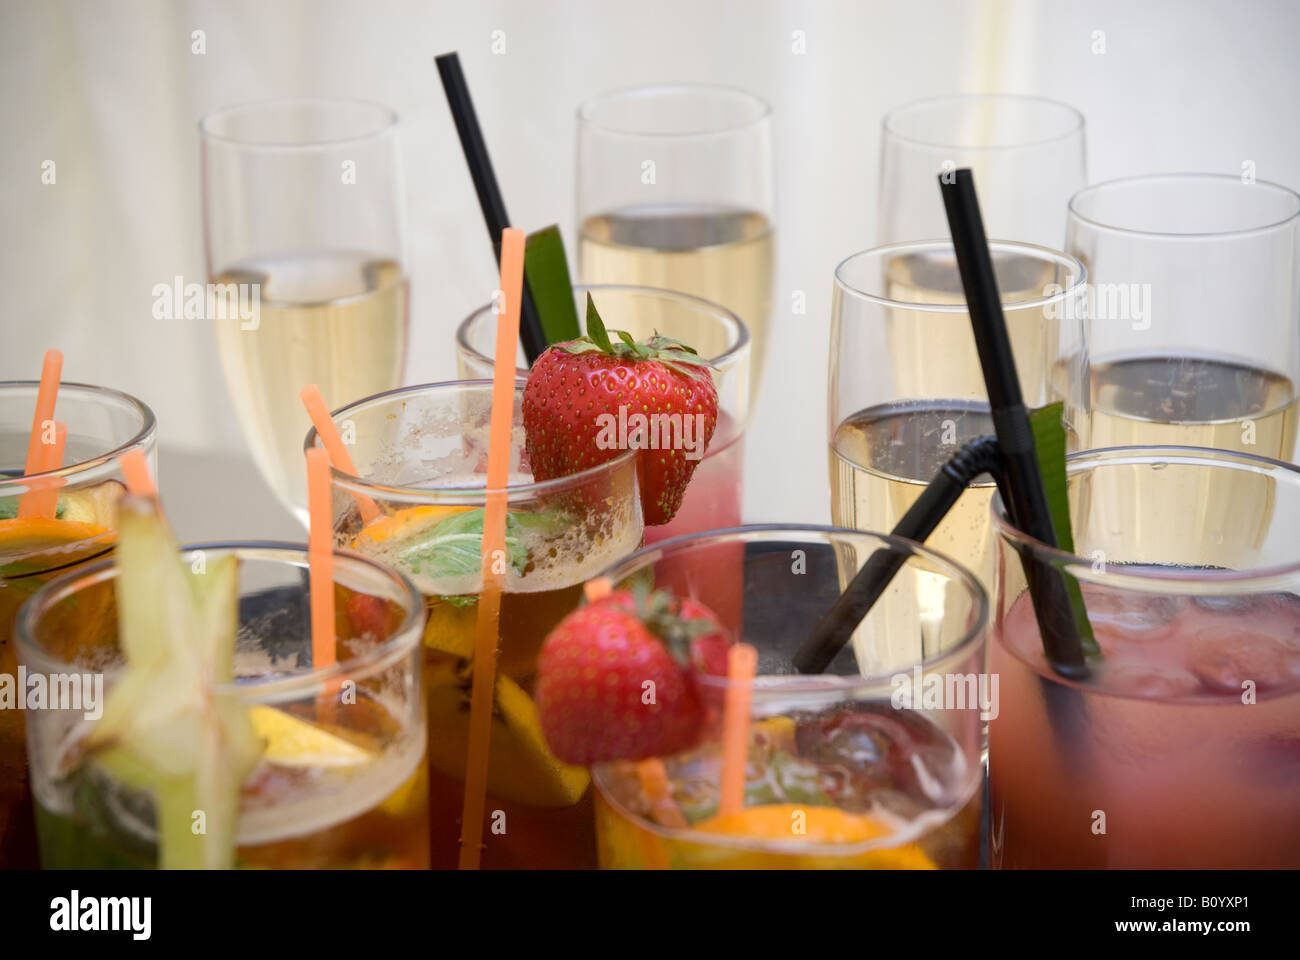 Glasses of Pimms and champange with strawberrys - Stock Image